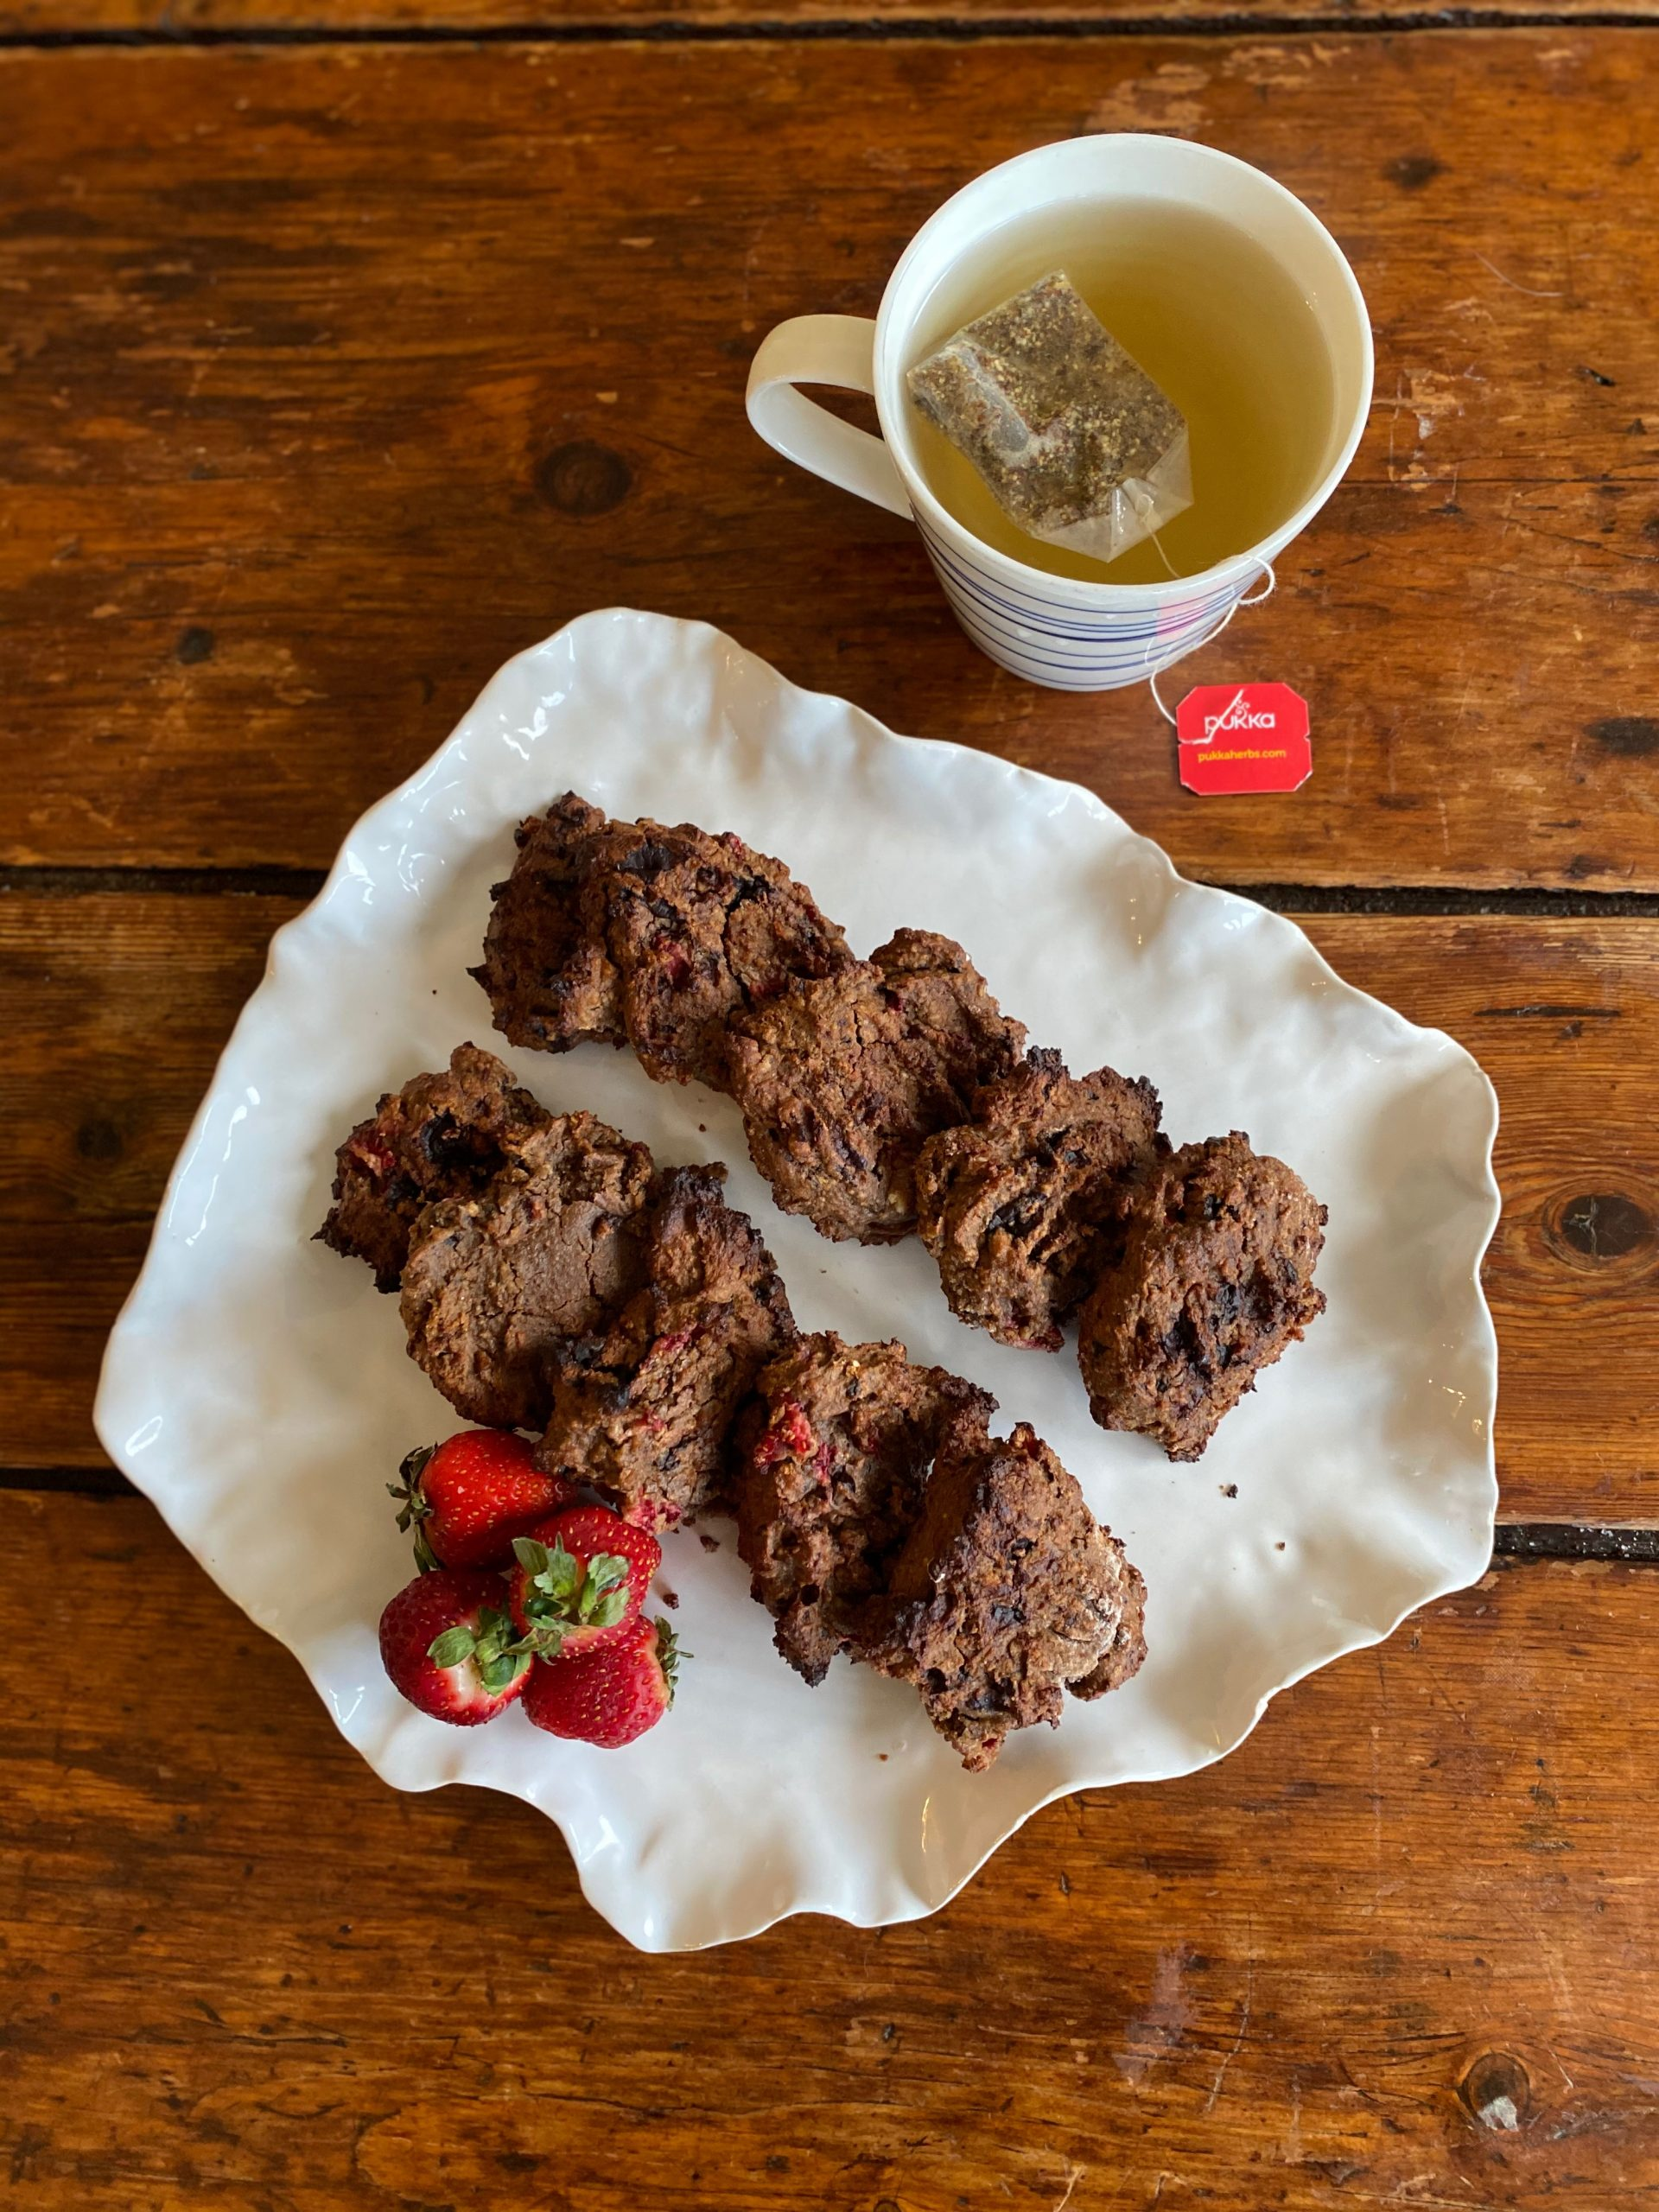 Gluten-free Chocolate Chickpea and Strawberry Cookies